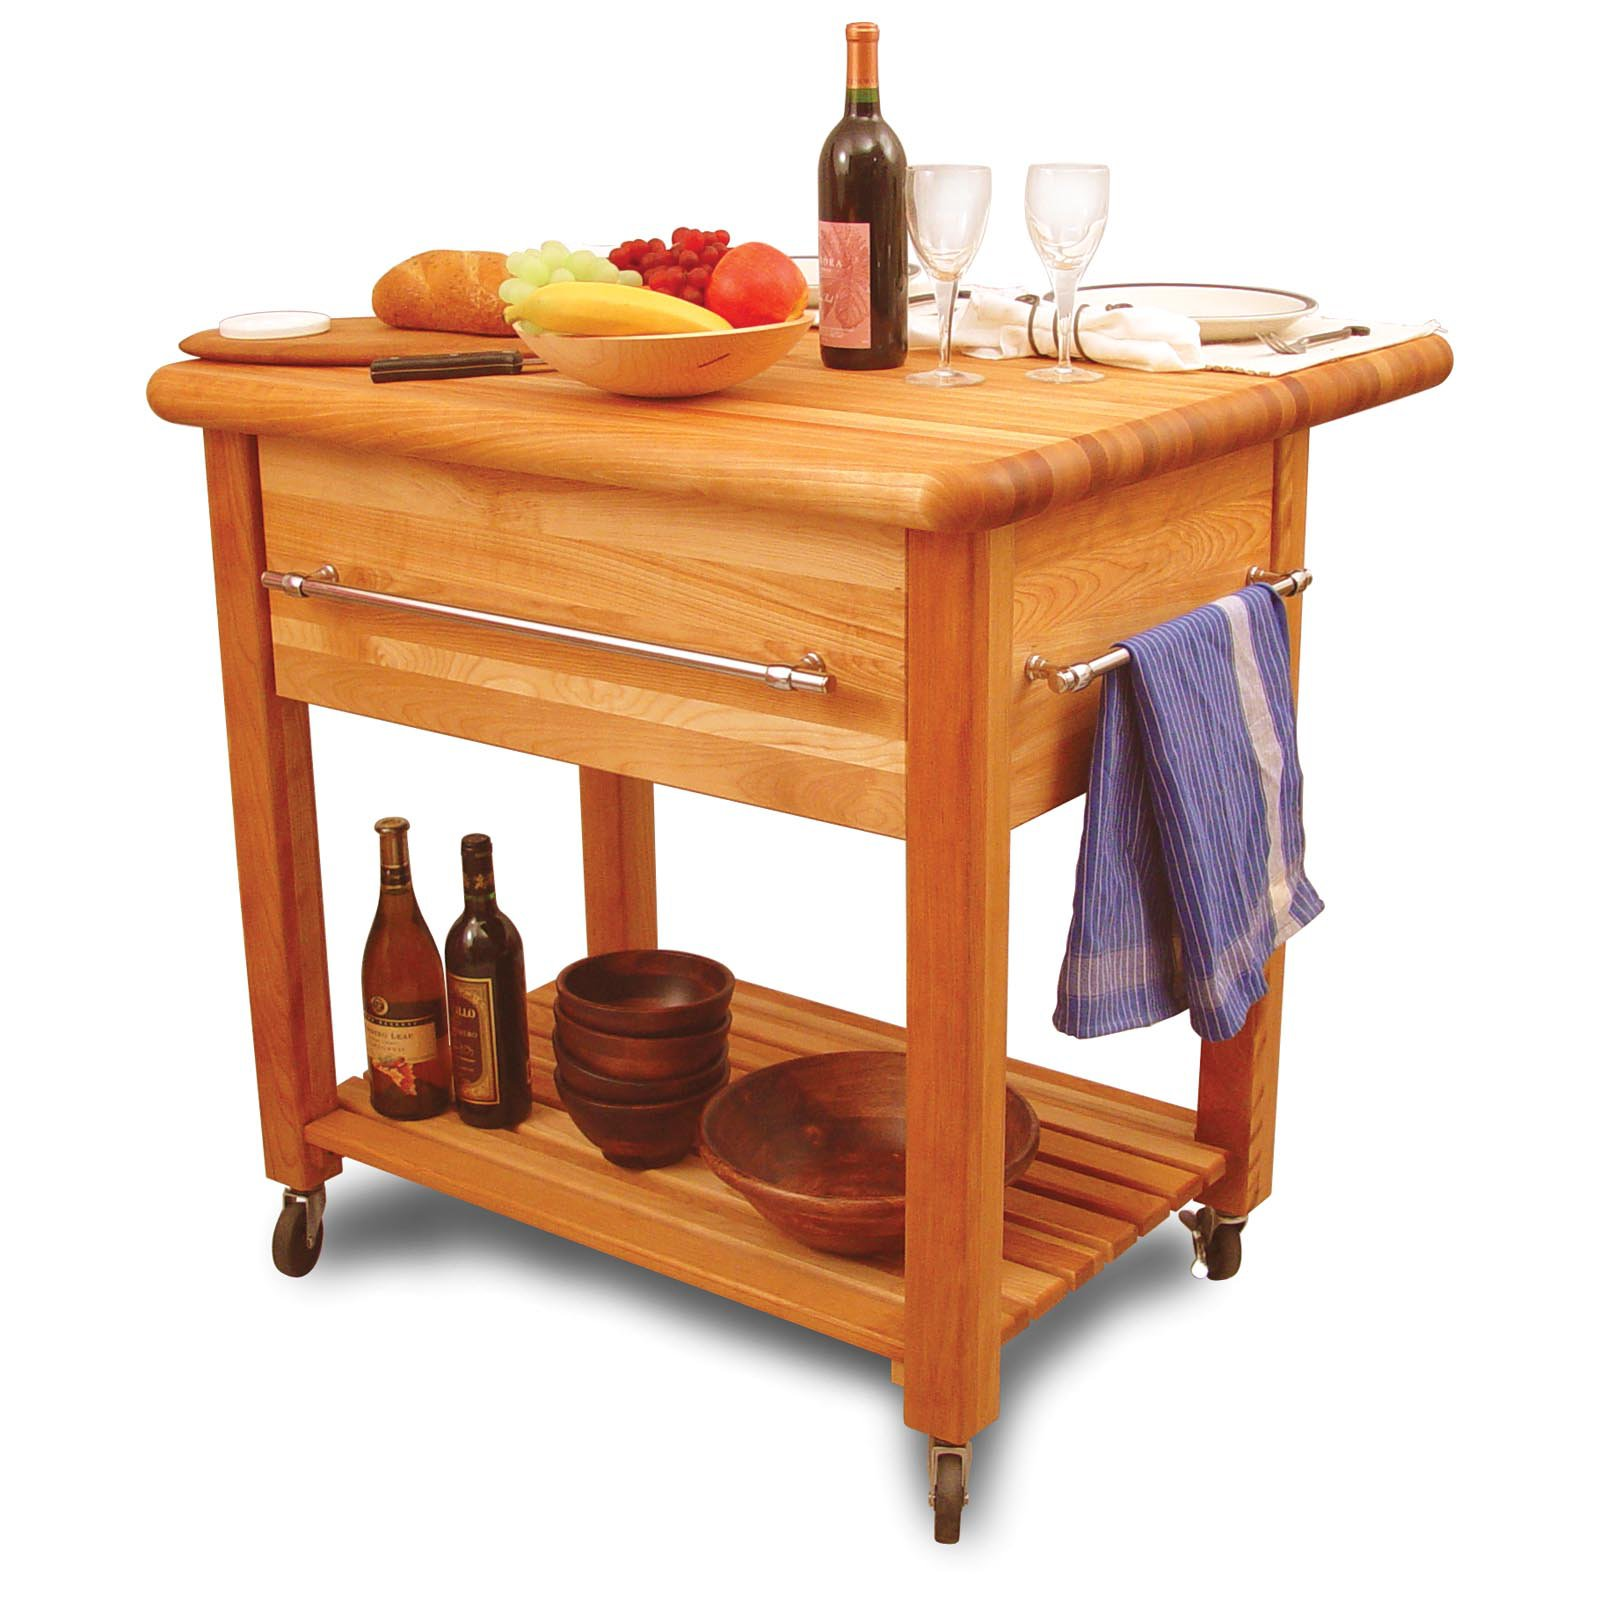 Grand Kitchen Island Workcenter - 8 in. Drop Leaf - Walmart.com